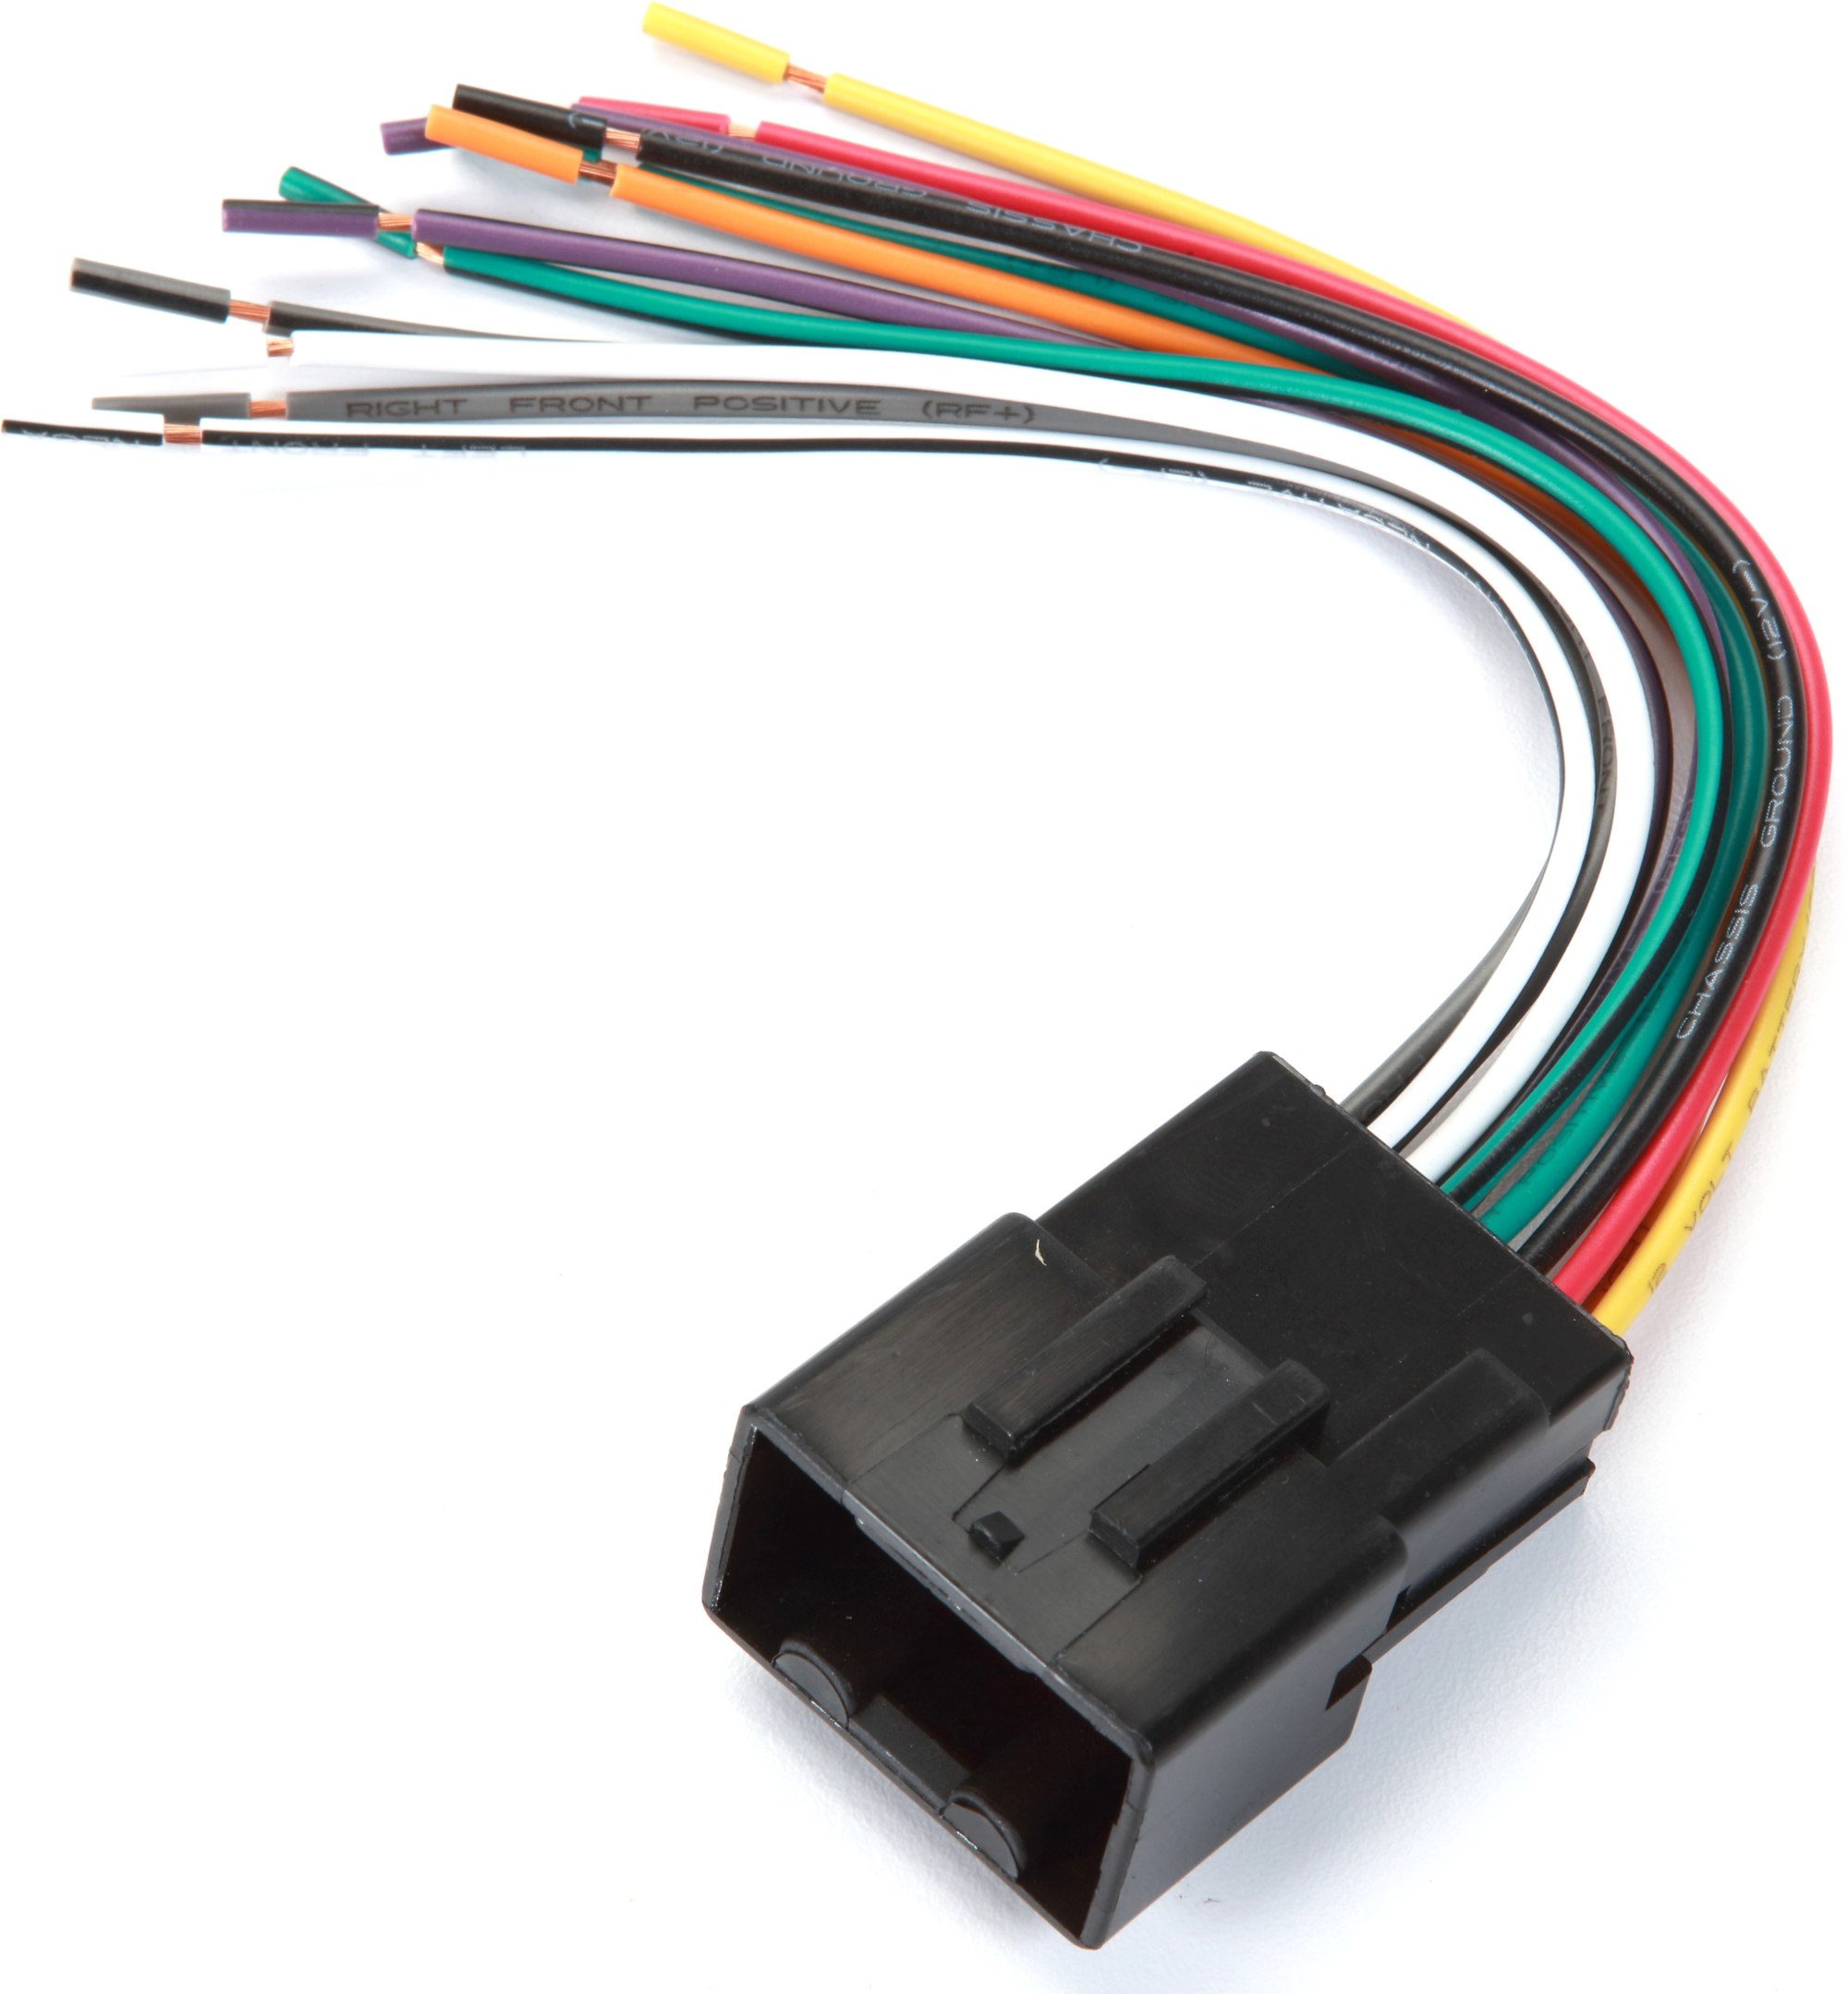 hight resolution of metra 70 1771 receiver wiring harness connect a new car stereo in select 1998 2011 ford lincoln mercury and mazda vehicles at crutchfield canada